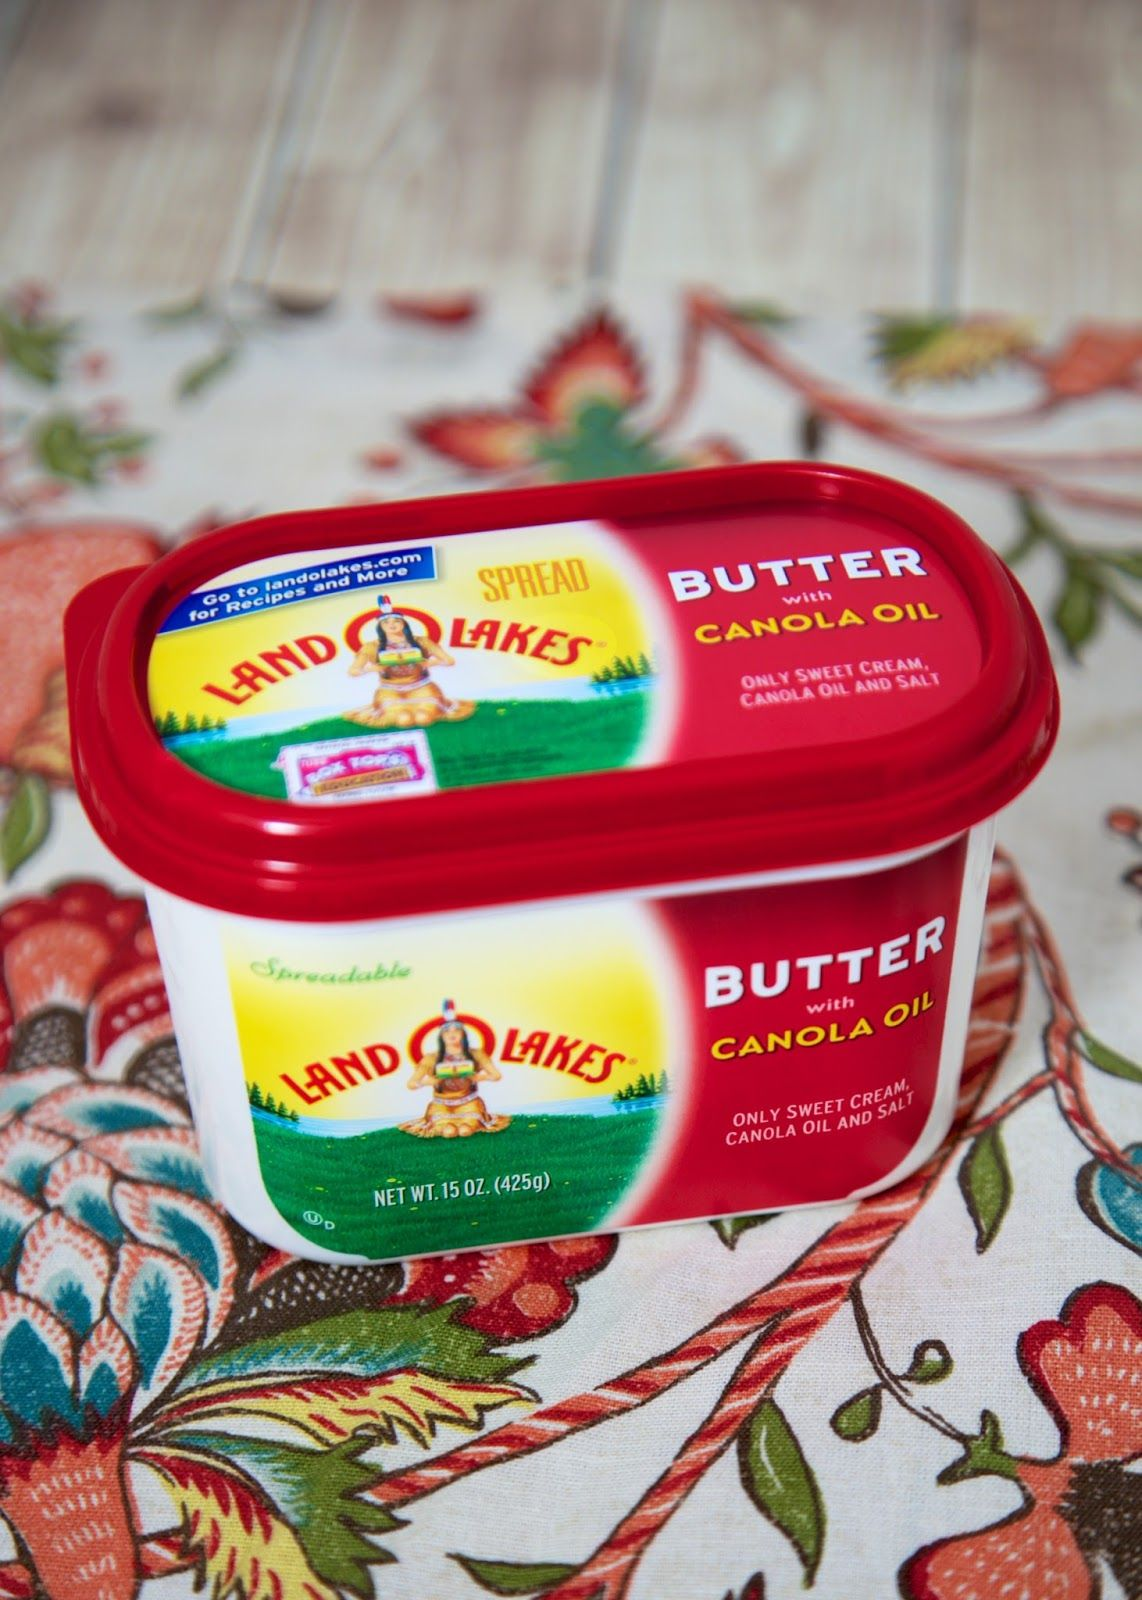 Land O Lakes Butter With Canola Oil Favorite Recipes To Use With Butter